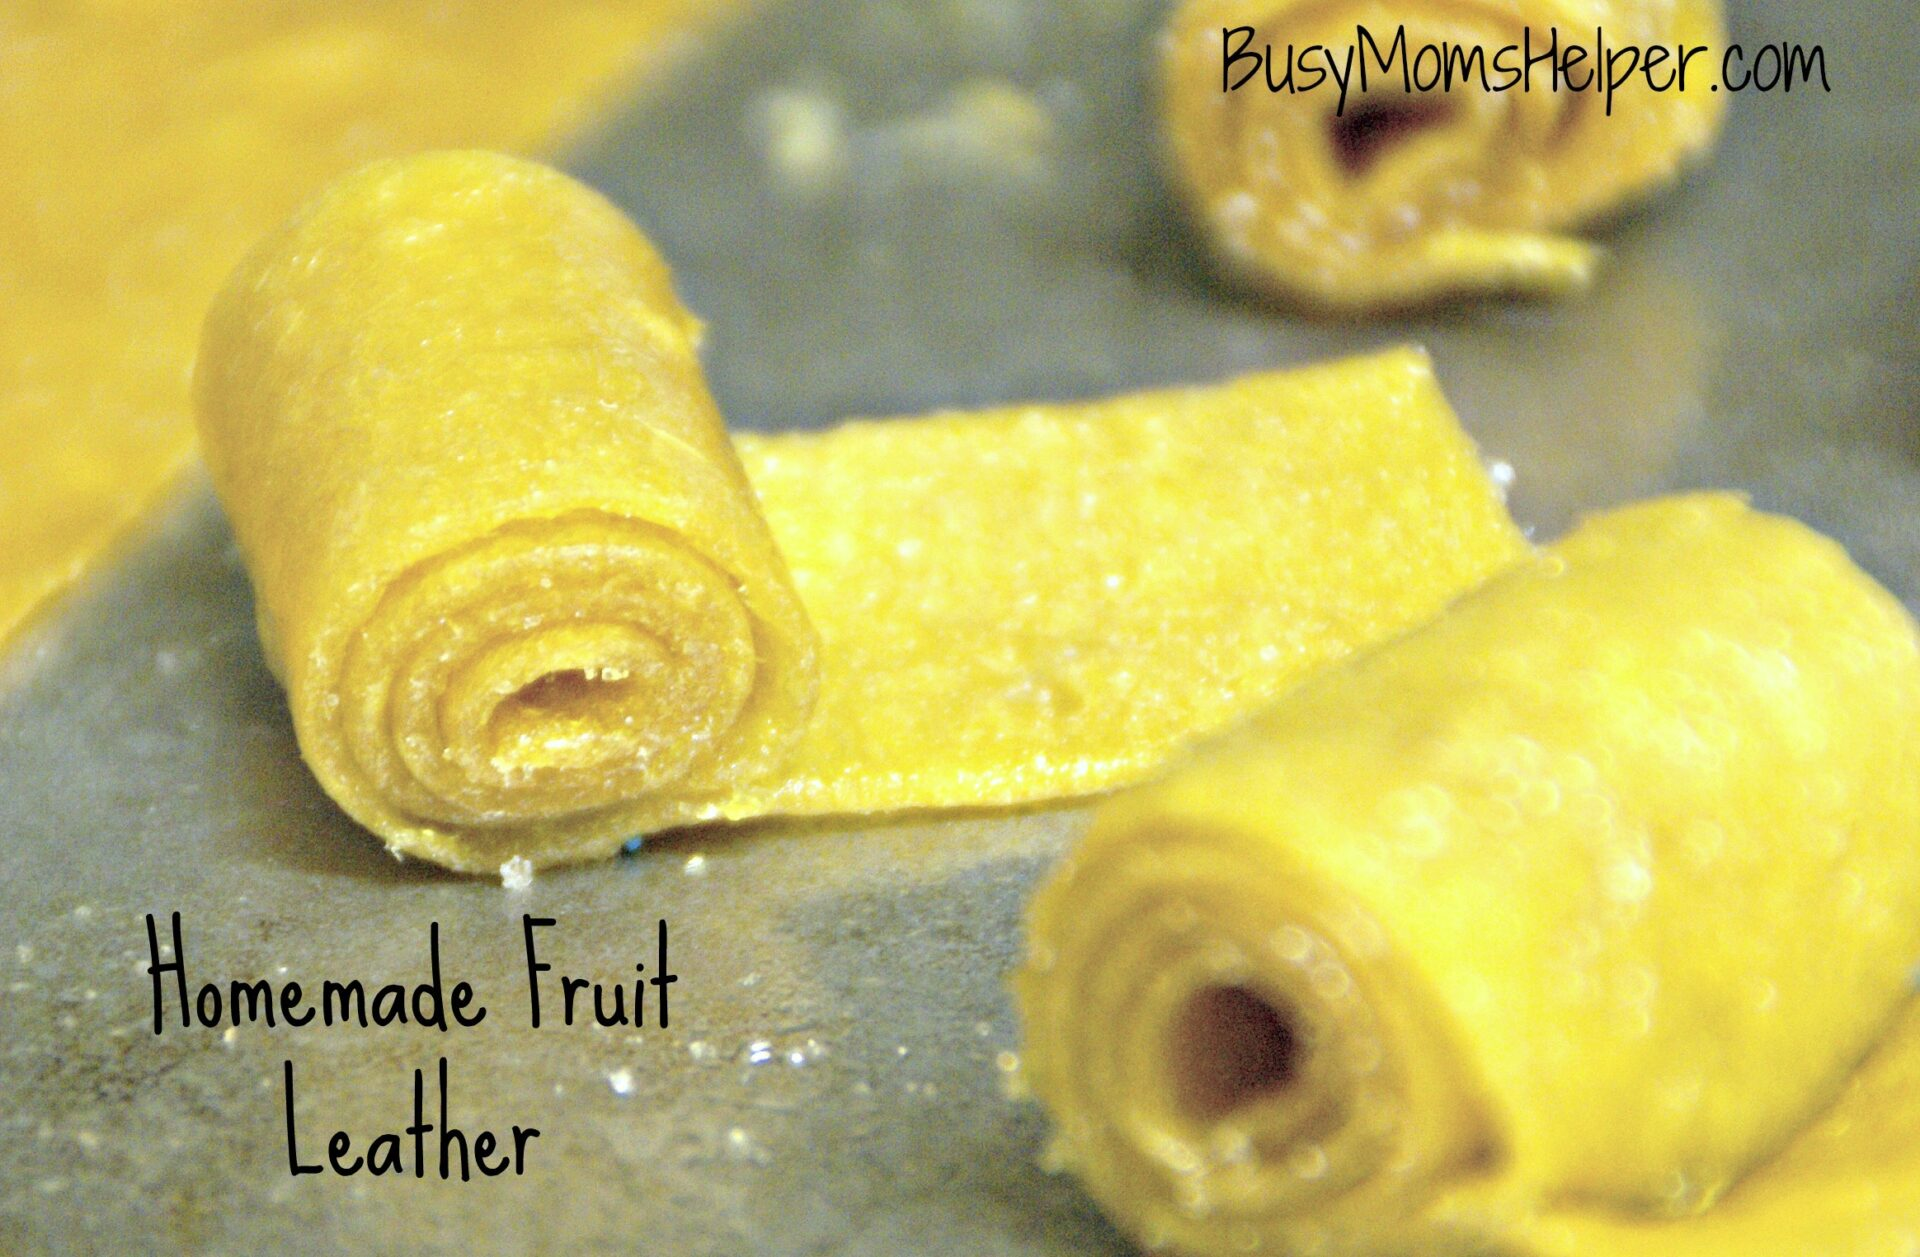 Lemon fruit leather. Recipes / Lemon fruit leather (+) Benefits of Fruit Based on His Skin Color. views. food with fruit leather that are red yellow fruit skin such as lemon, banana, corn. Lemon Fruit Salad. views. Lemon Fruit Salad, ingredients: 1 box instant lemon .